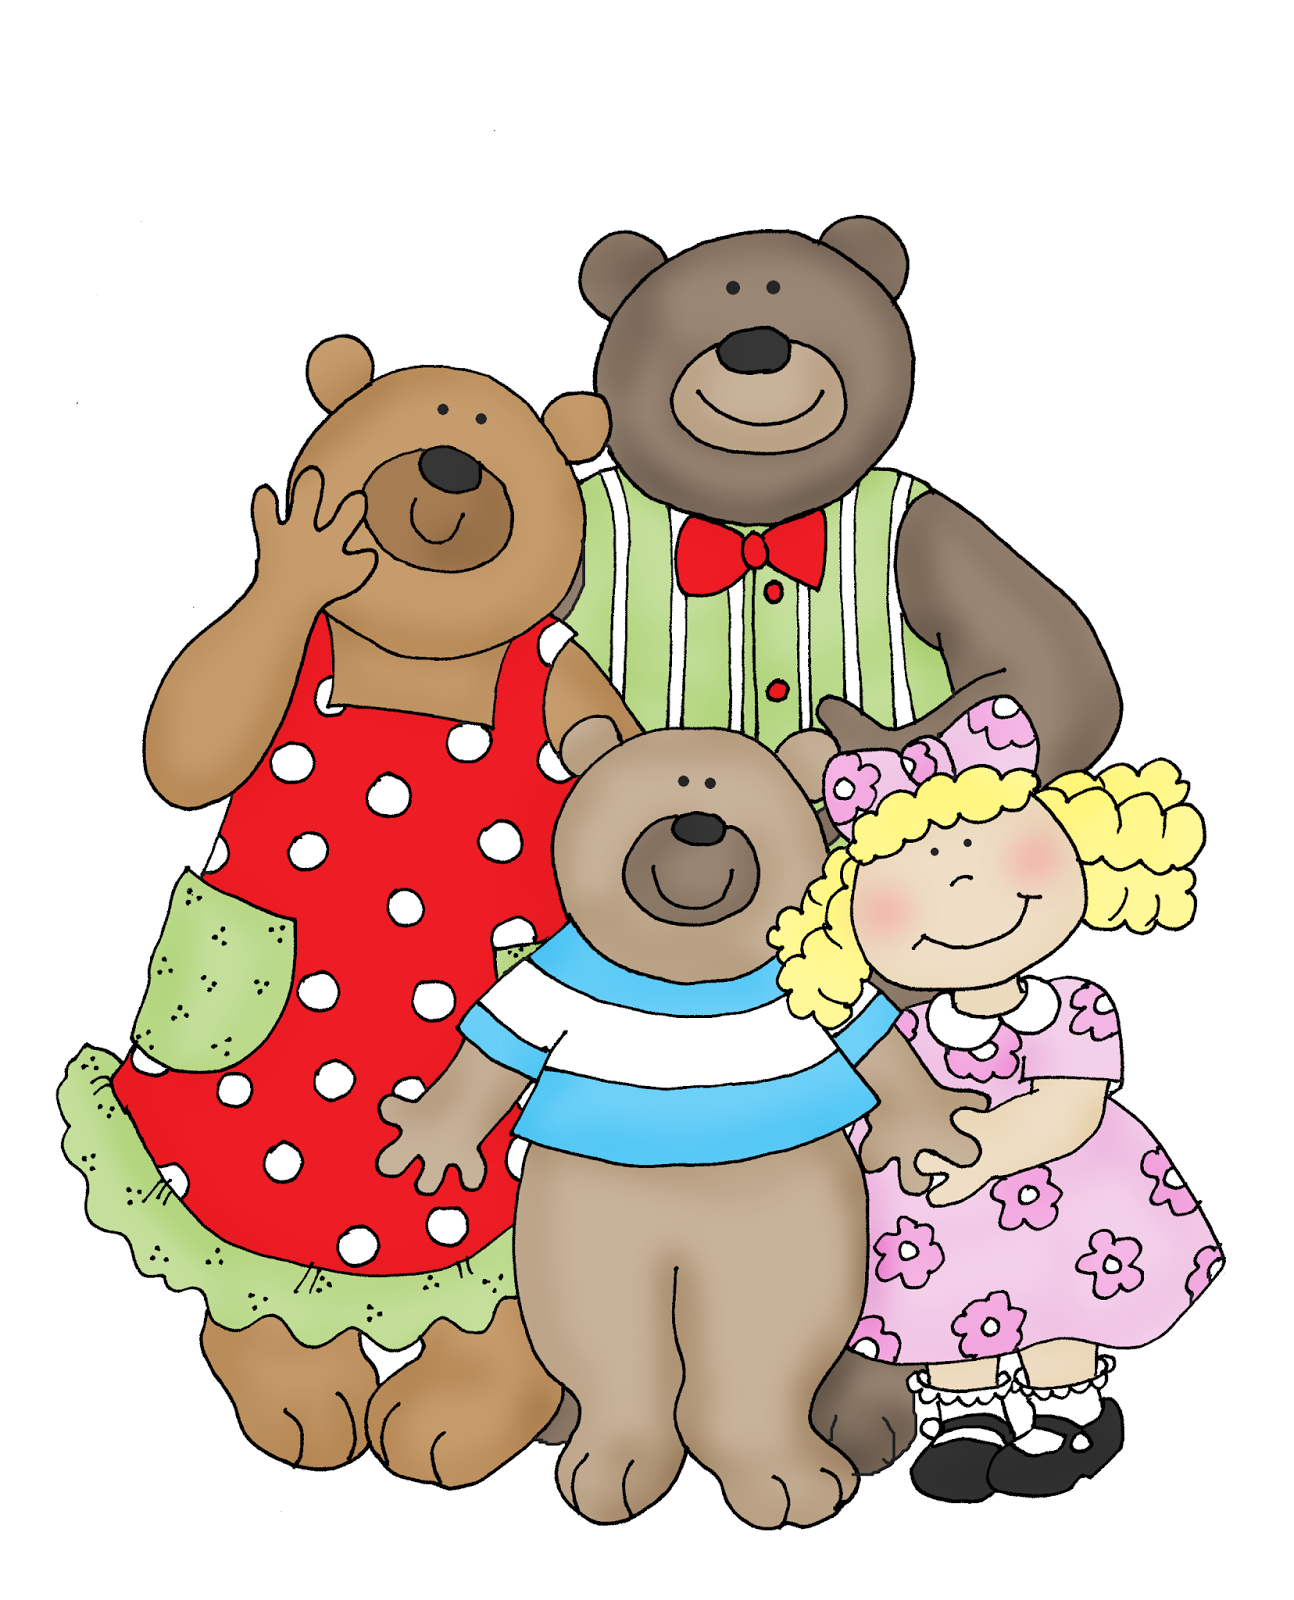 Uncategorized And The Three Bears free dearie dolls digi stamps goldilocks and the three bears bears